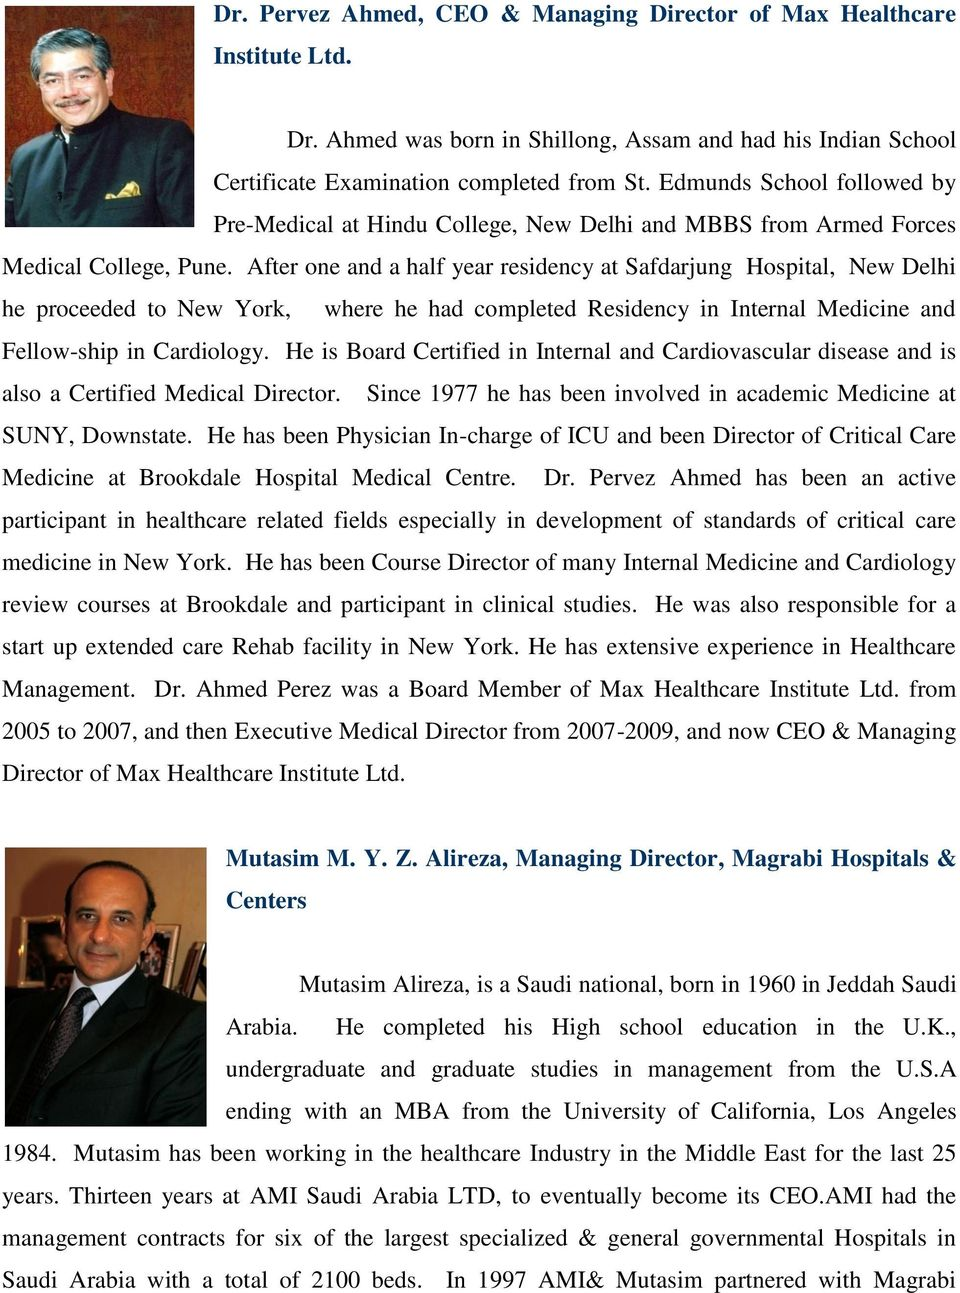 After one and a half year residency at Safdarjung Hospital, New Delhi he proceeded to New York, where he had completed Residency in Internal Medicine and Fellow-ship in Cardiology.